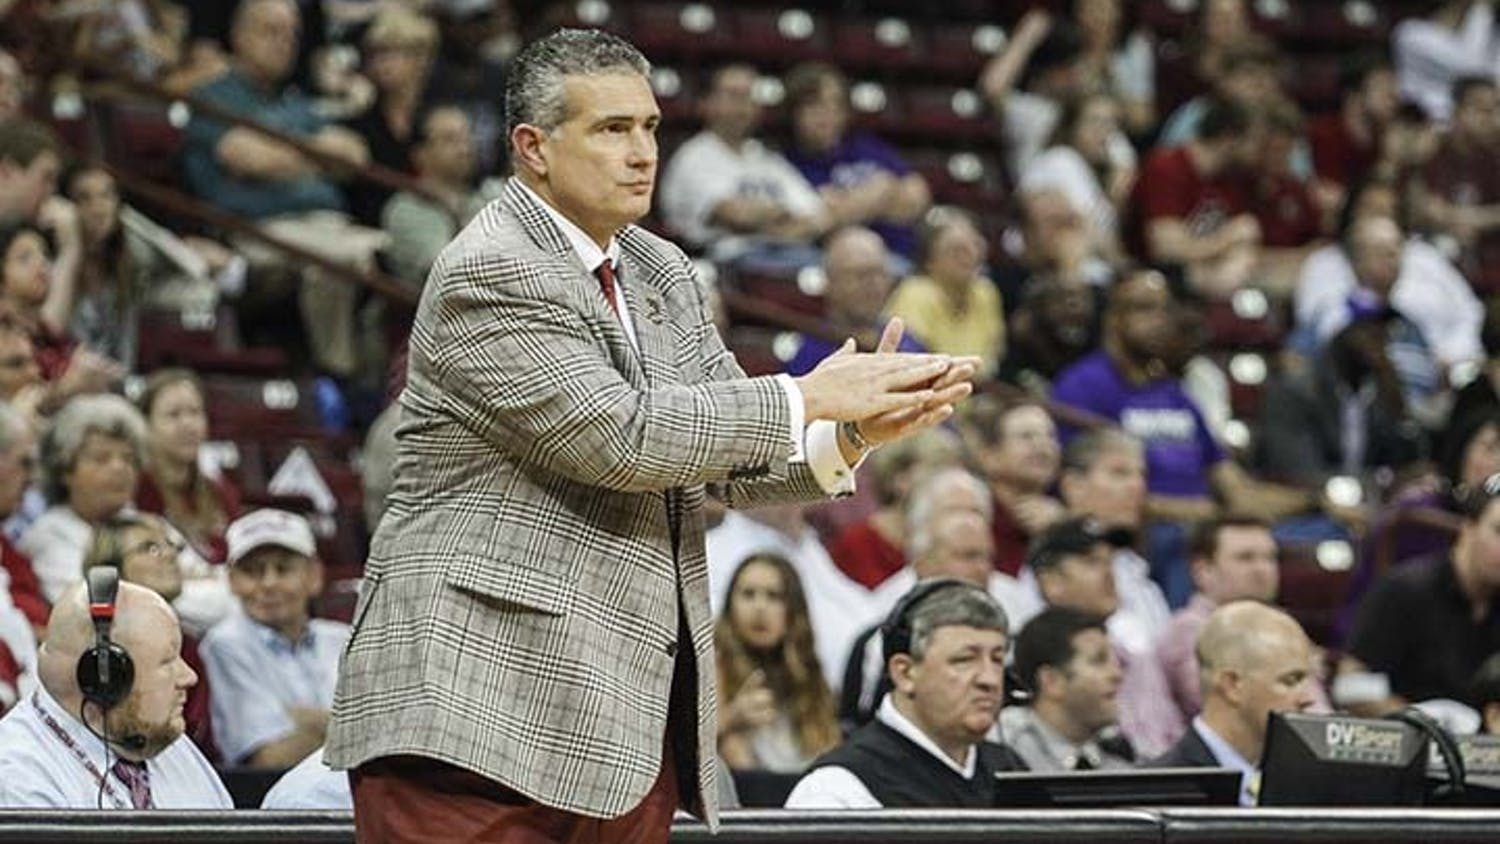 Head coach Frank Martin spoke to the media Monday to address his contract and roster moving aheadinto the future.